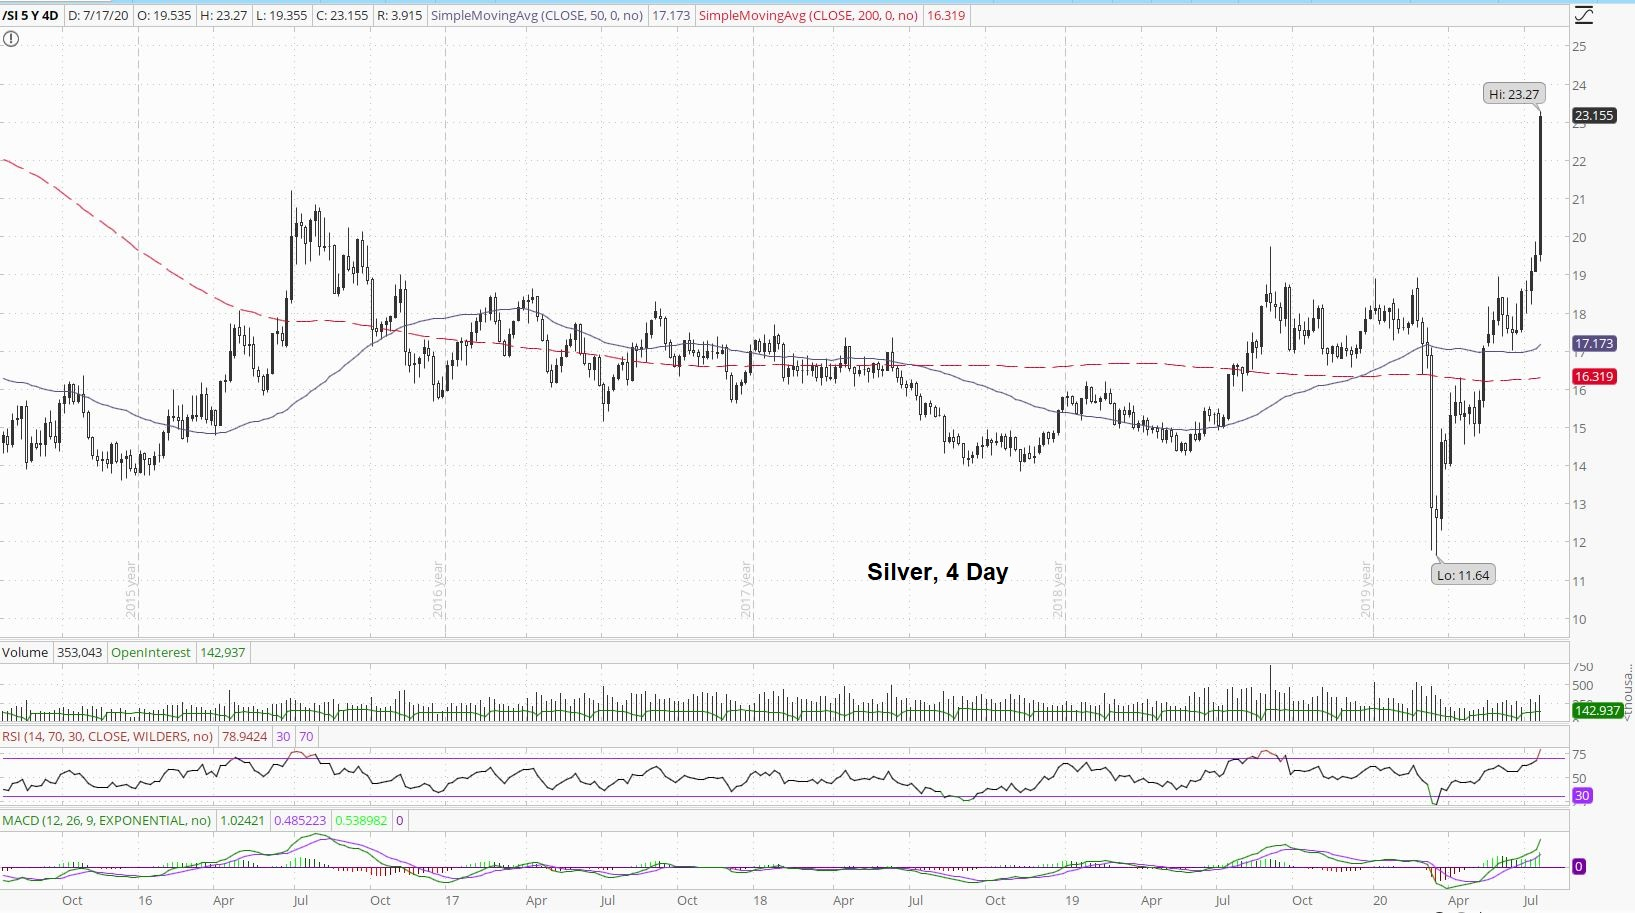 Silver 4 Day